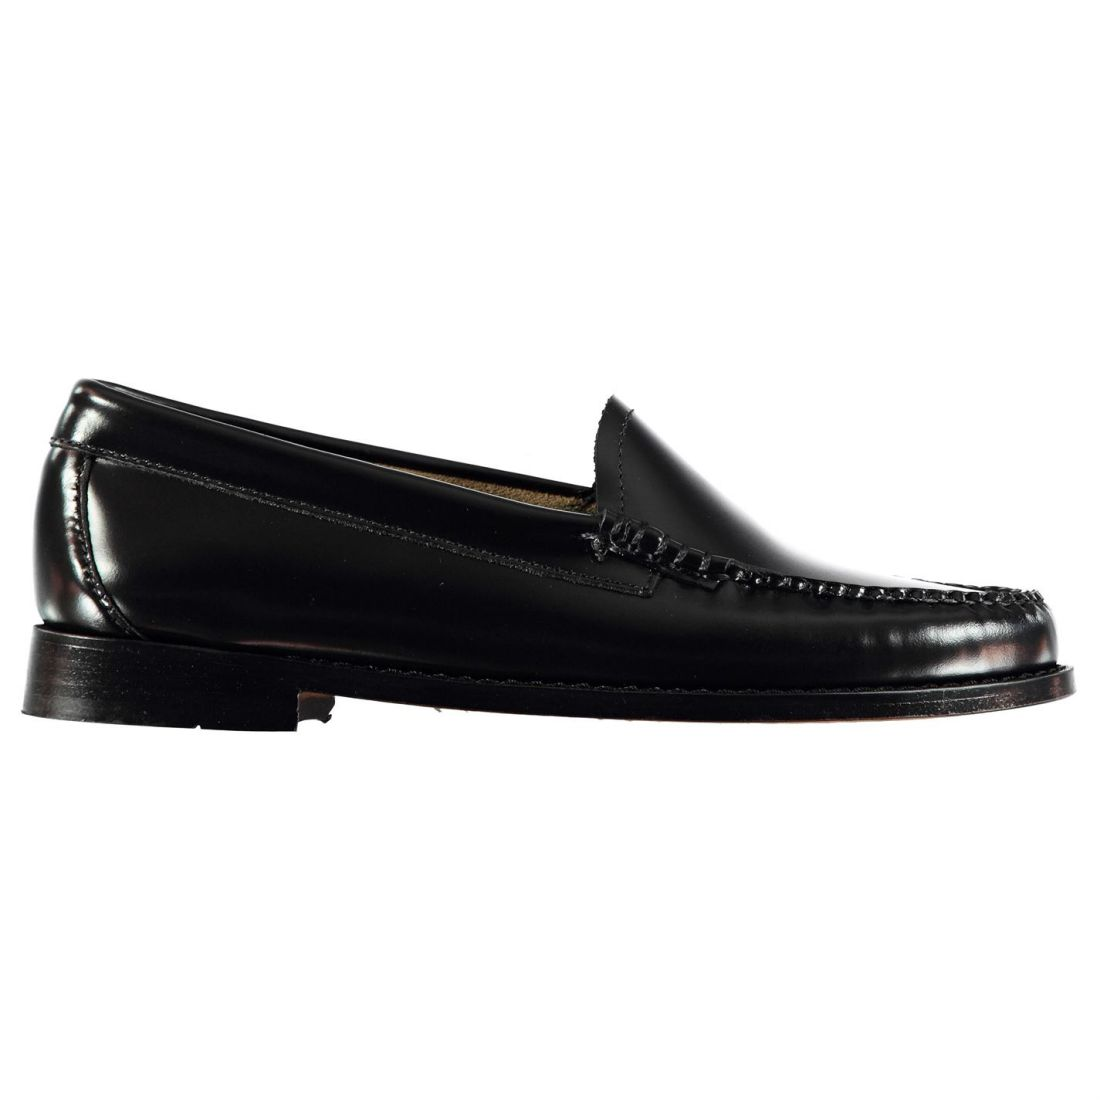 a031b780aaa Bass Weejuns Lillian Loafer Ladies Loafers Polished Black UK 8 (41 ...